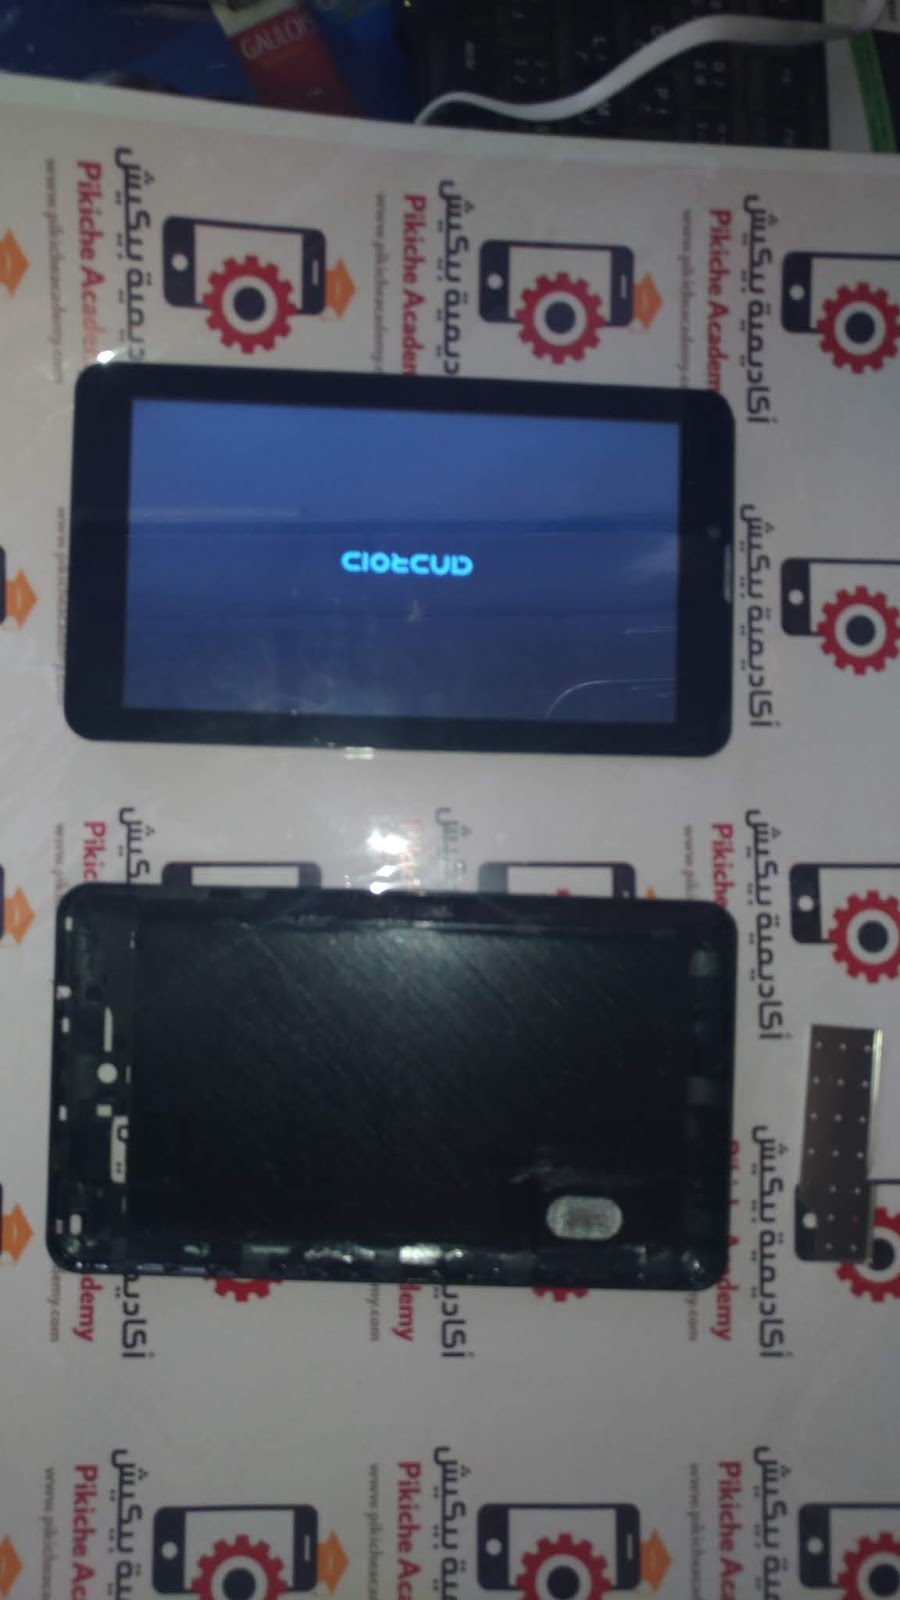 MTK] [Onyx] TX102 - Firmware Tested - Free ~ FirstRom : Download